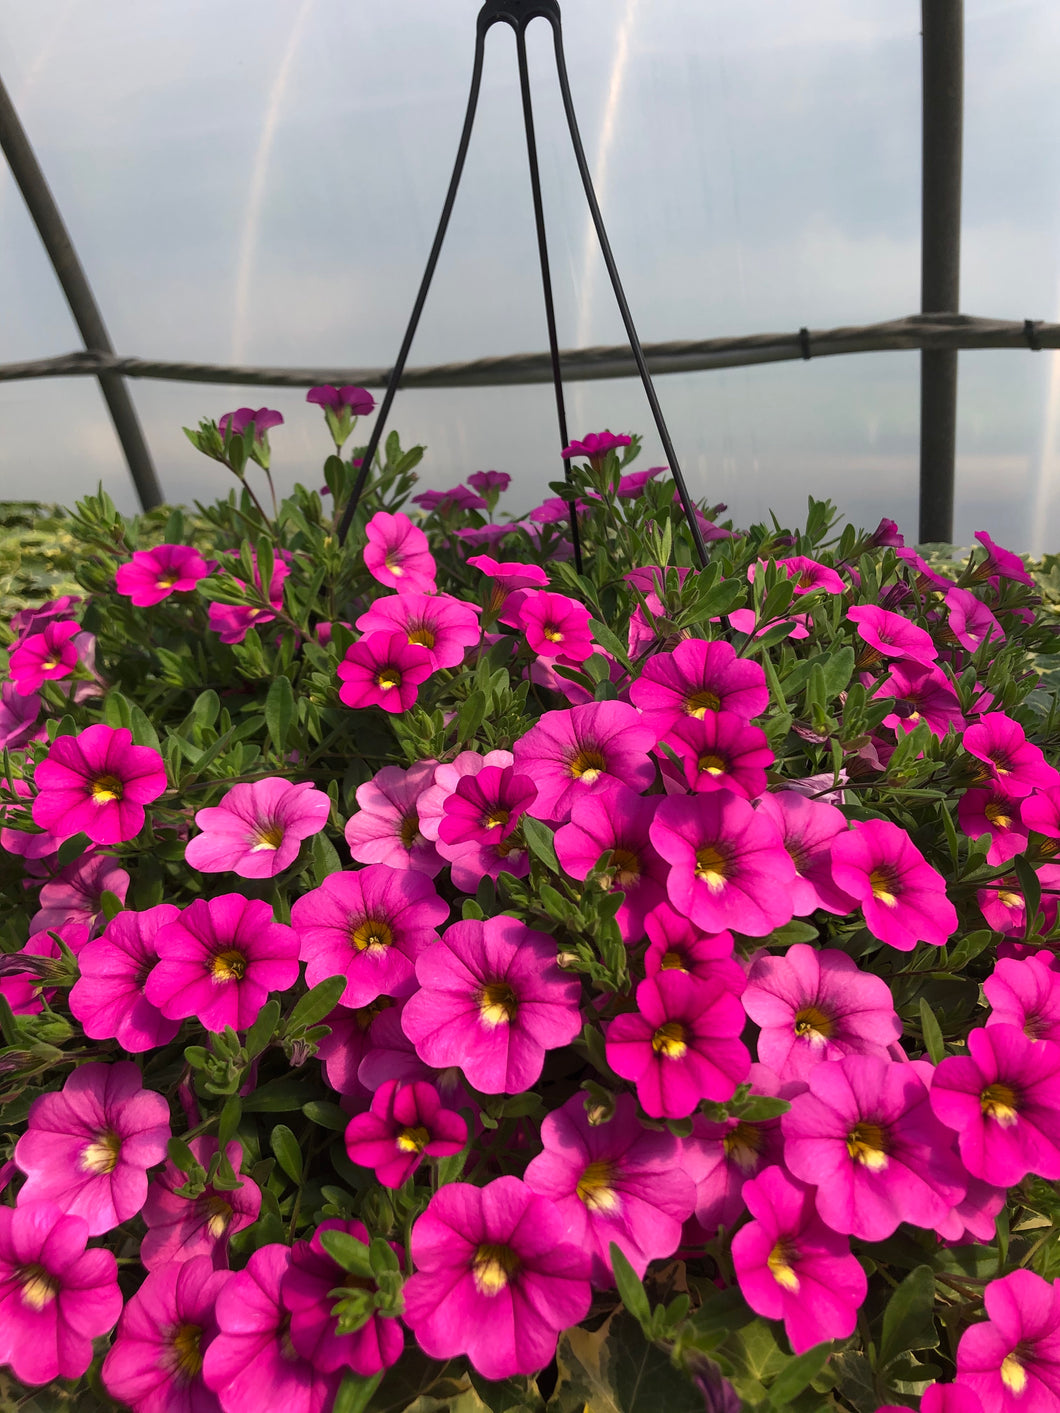 Million Bells (calibrachoa) - 10 inch hanging basket - Hot Pink